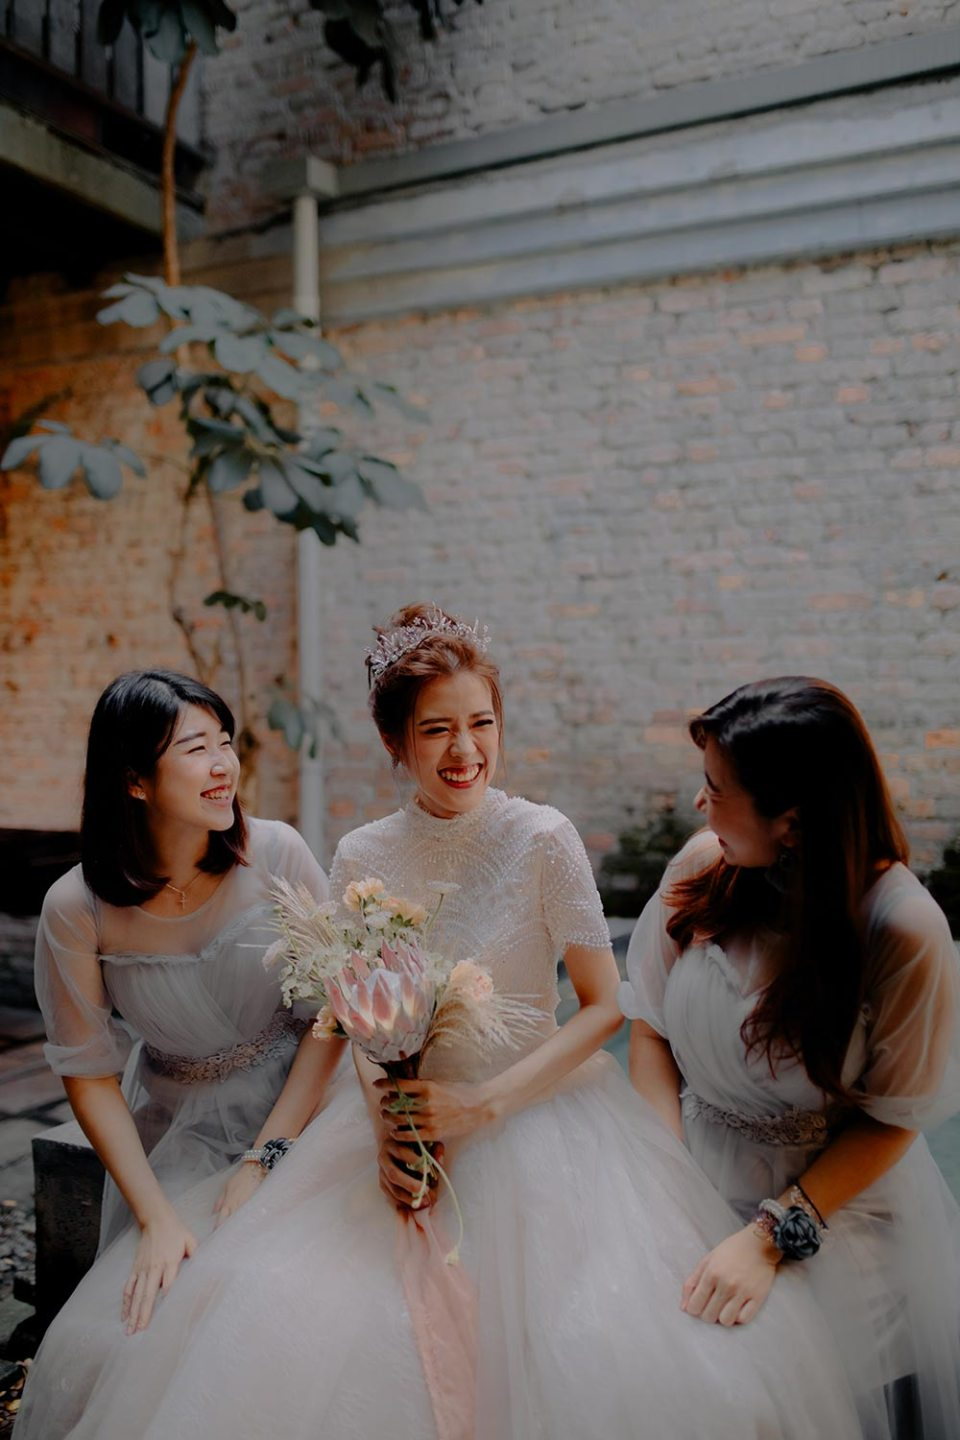 Bridesmaids at Halaman – A Boutique Guesthouse in Kuala LumpurJessielyee Photography. www.theweddingnotebook.com